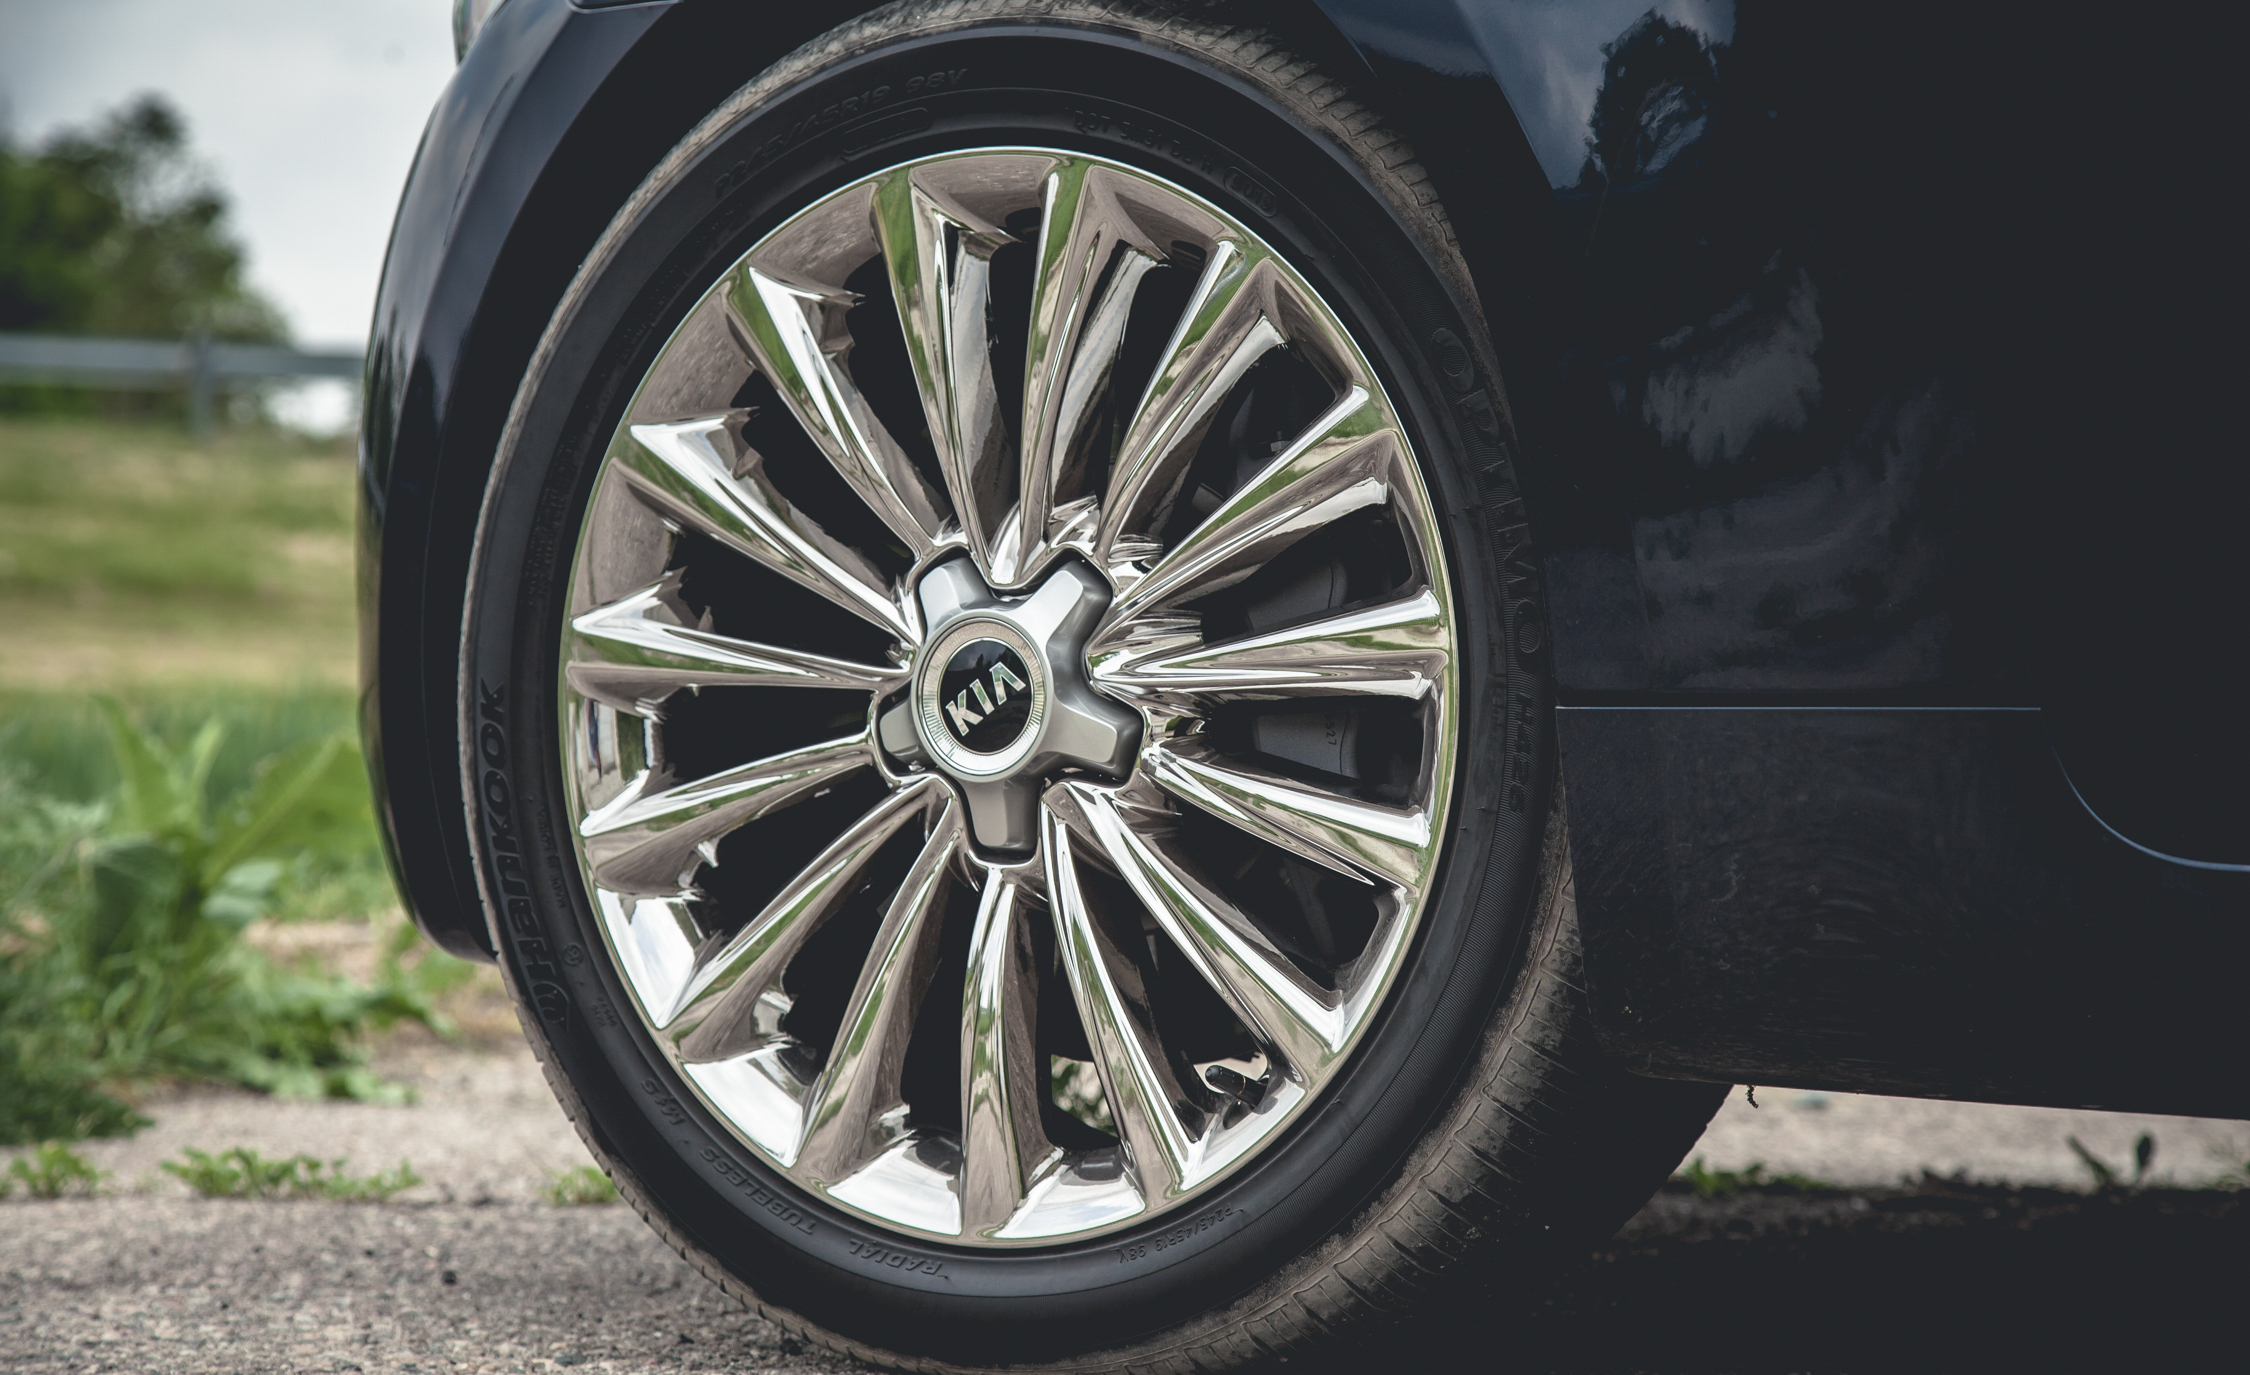 2015 Kia K900 V-8 Exterior Wheel Trim